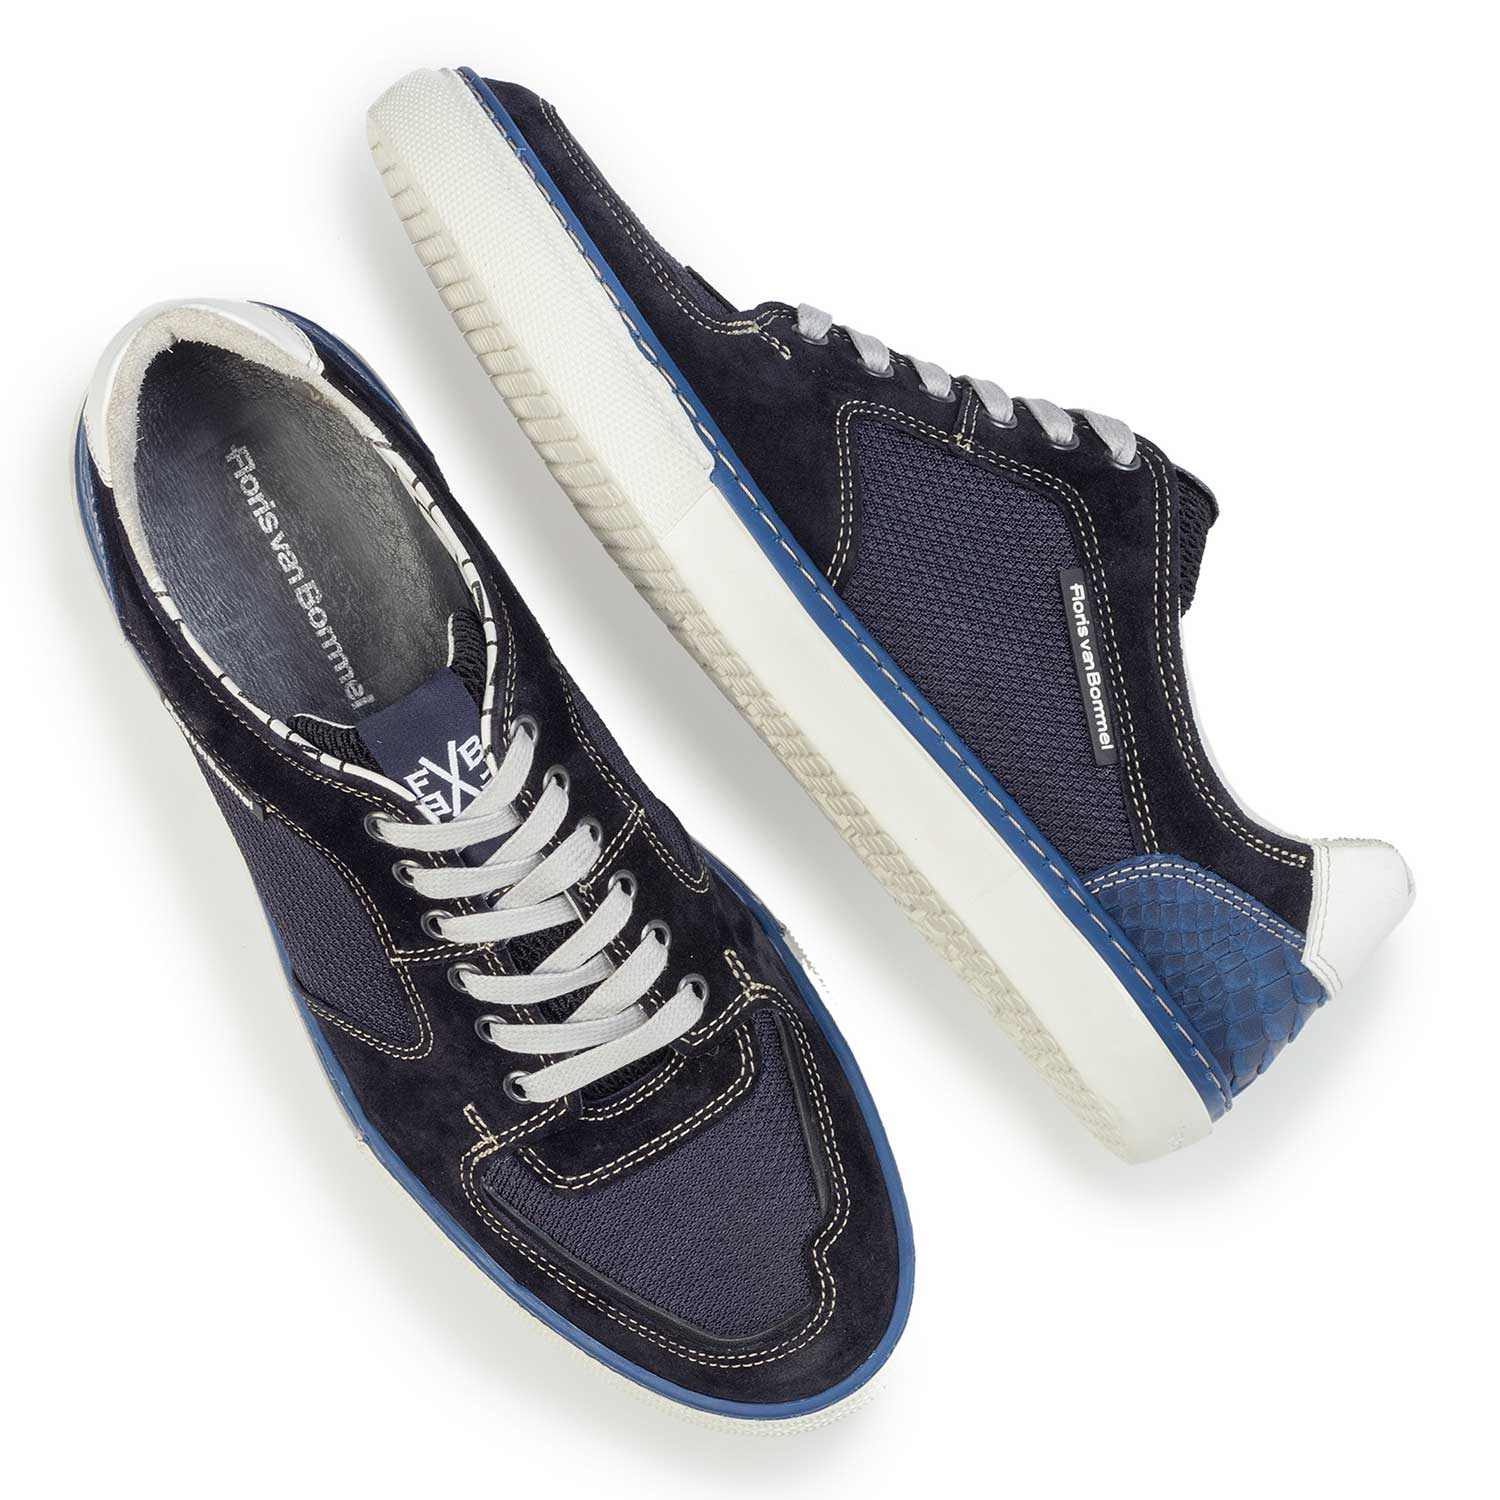 16252/00 - Dark blue suede leather sneaker